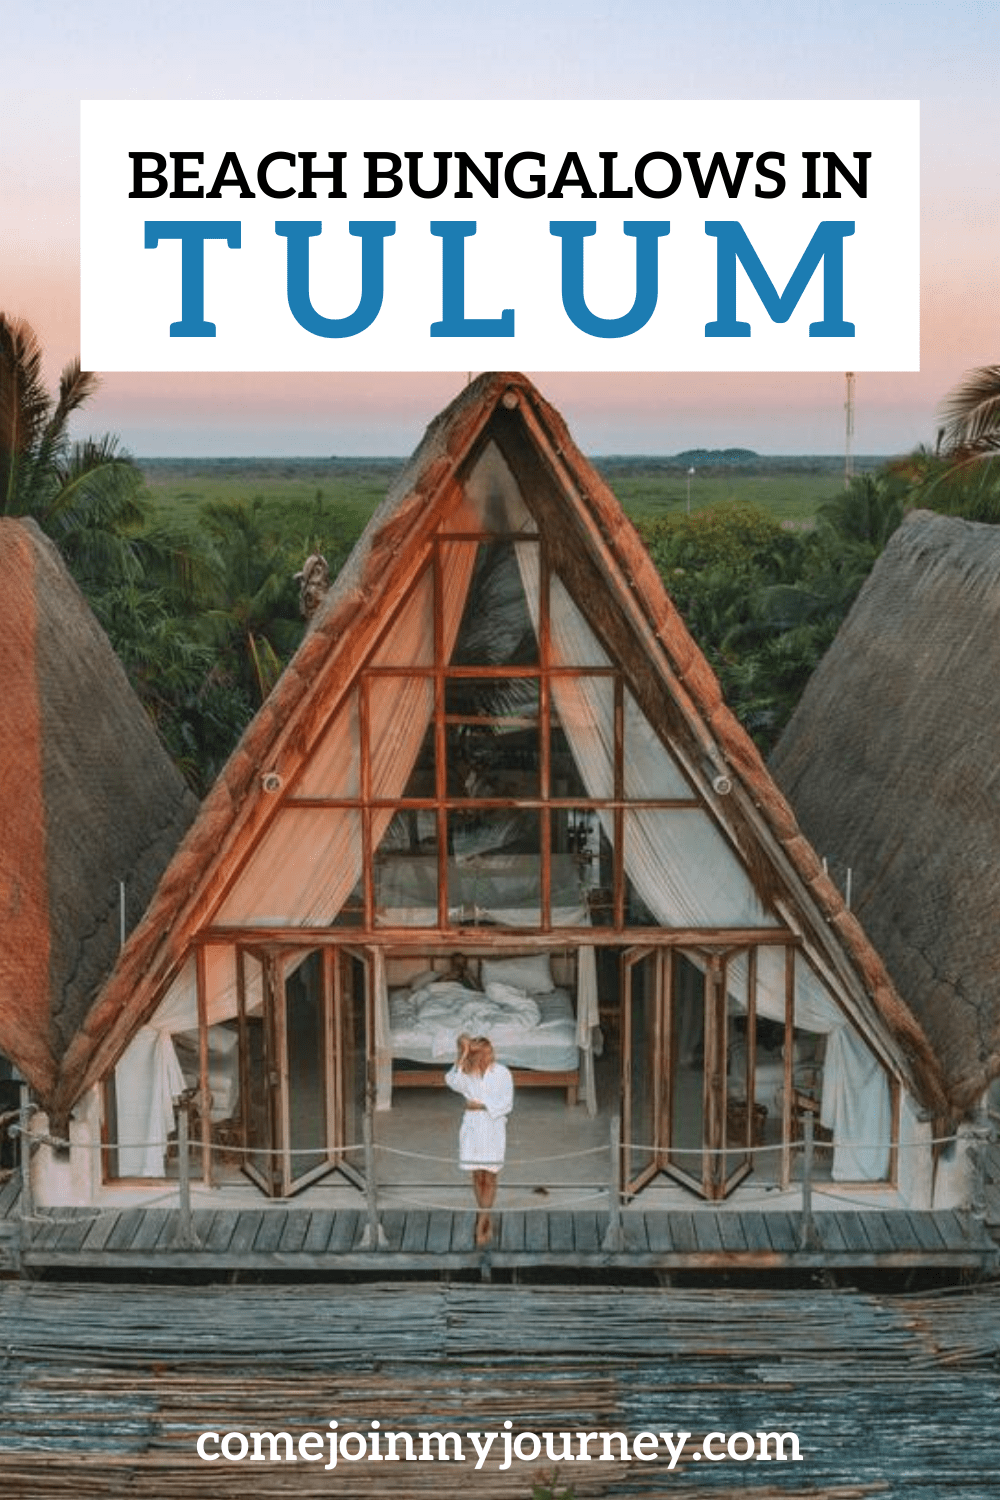 Beach Bungalows in Tulum